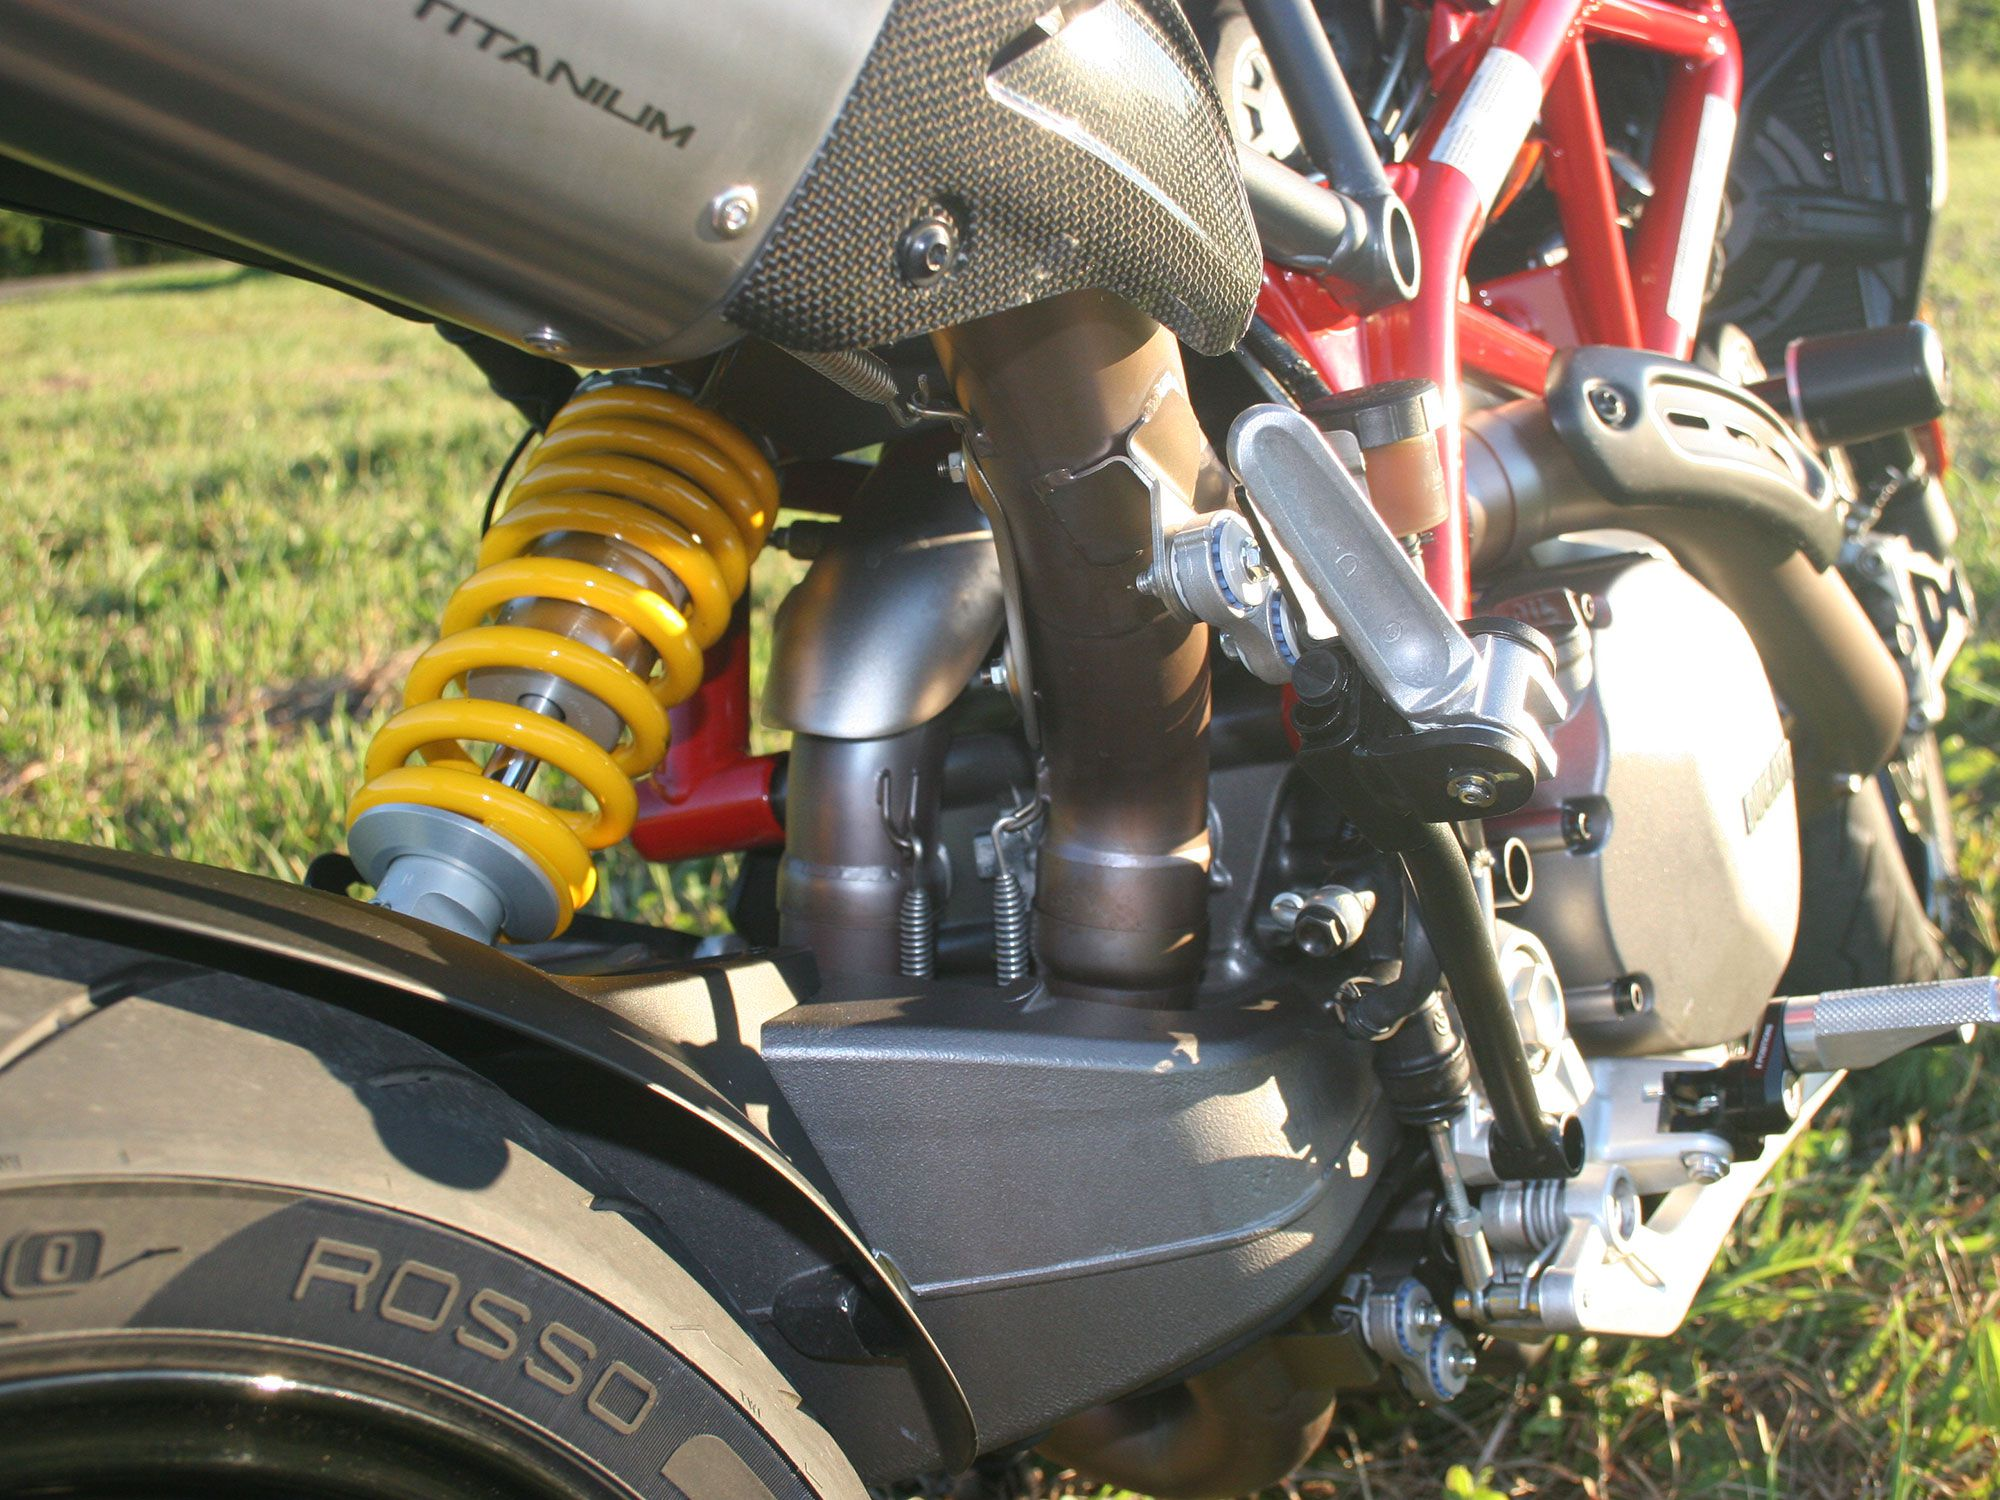 New exhaust routing exposes the swingarm.